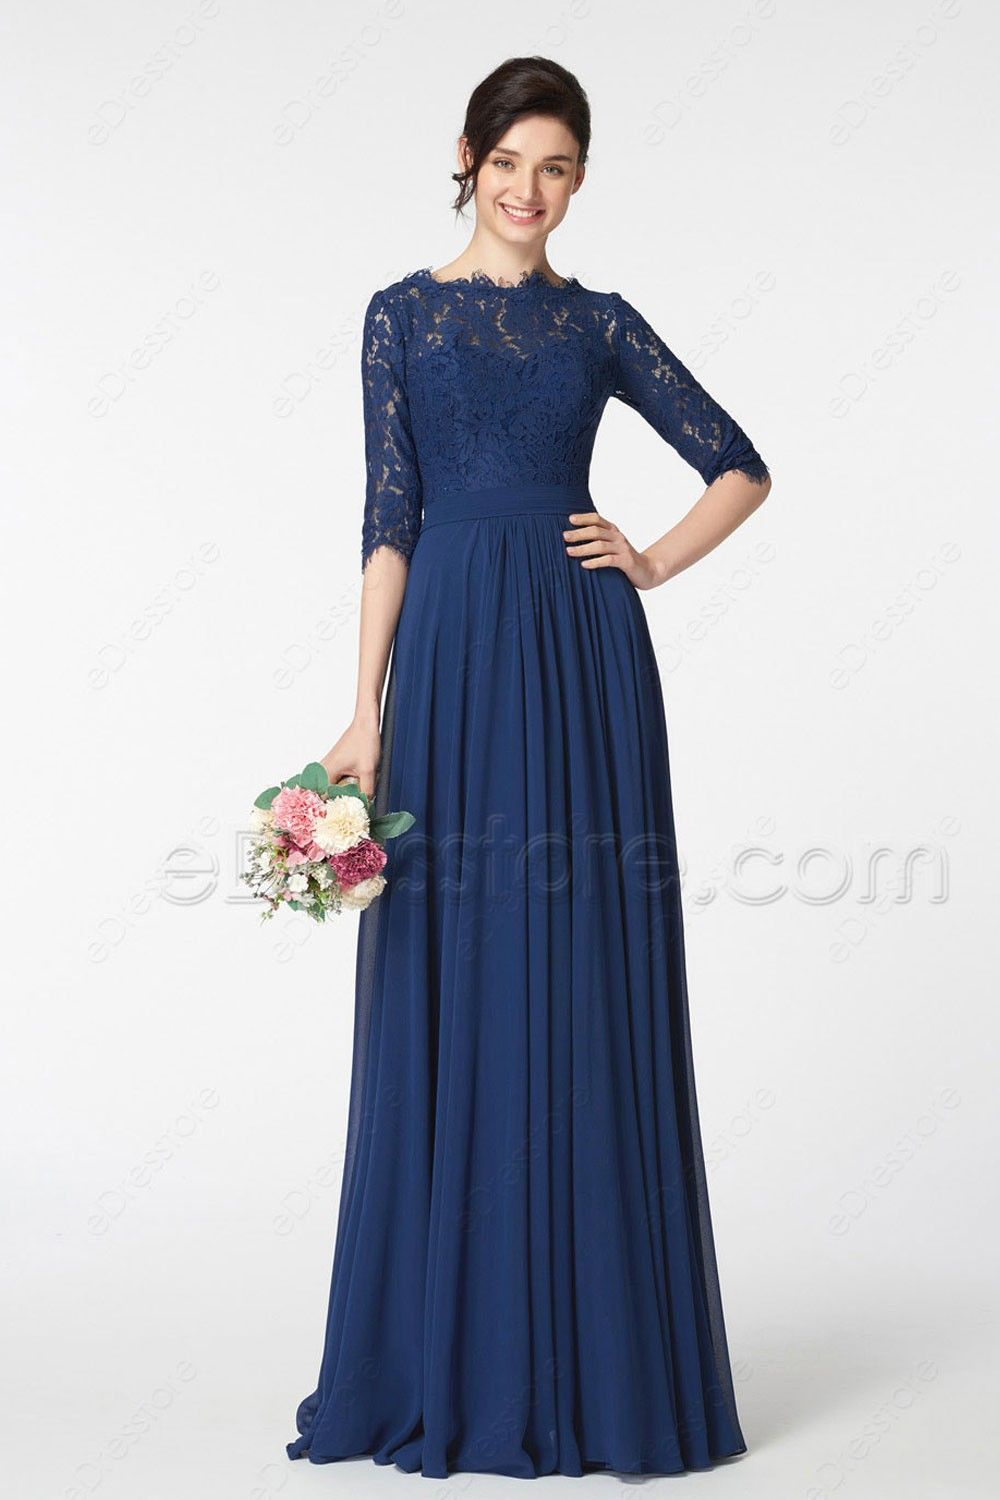 a29e9752c9b ... plus size mother of the groom dresses. The navy blue bridesmaid dress  features scalloped O neckline and lace top